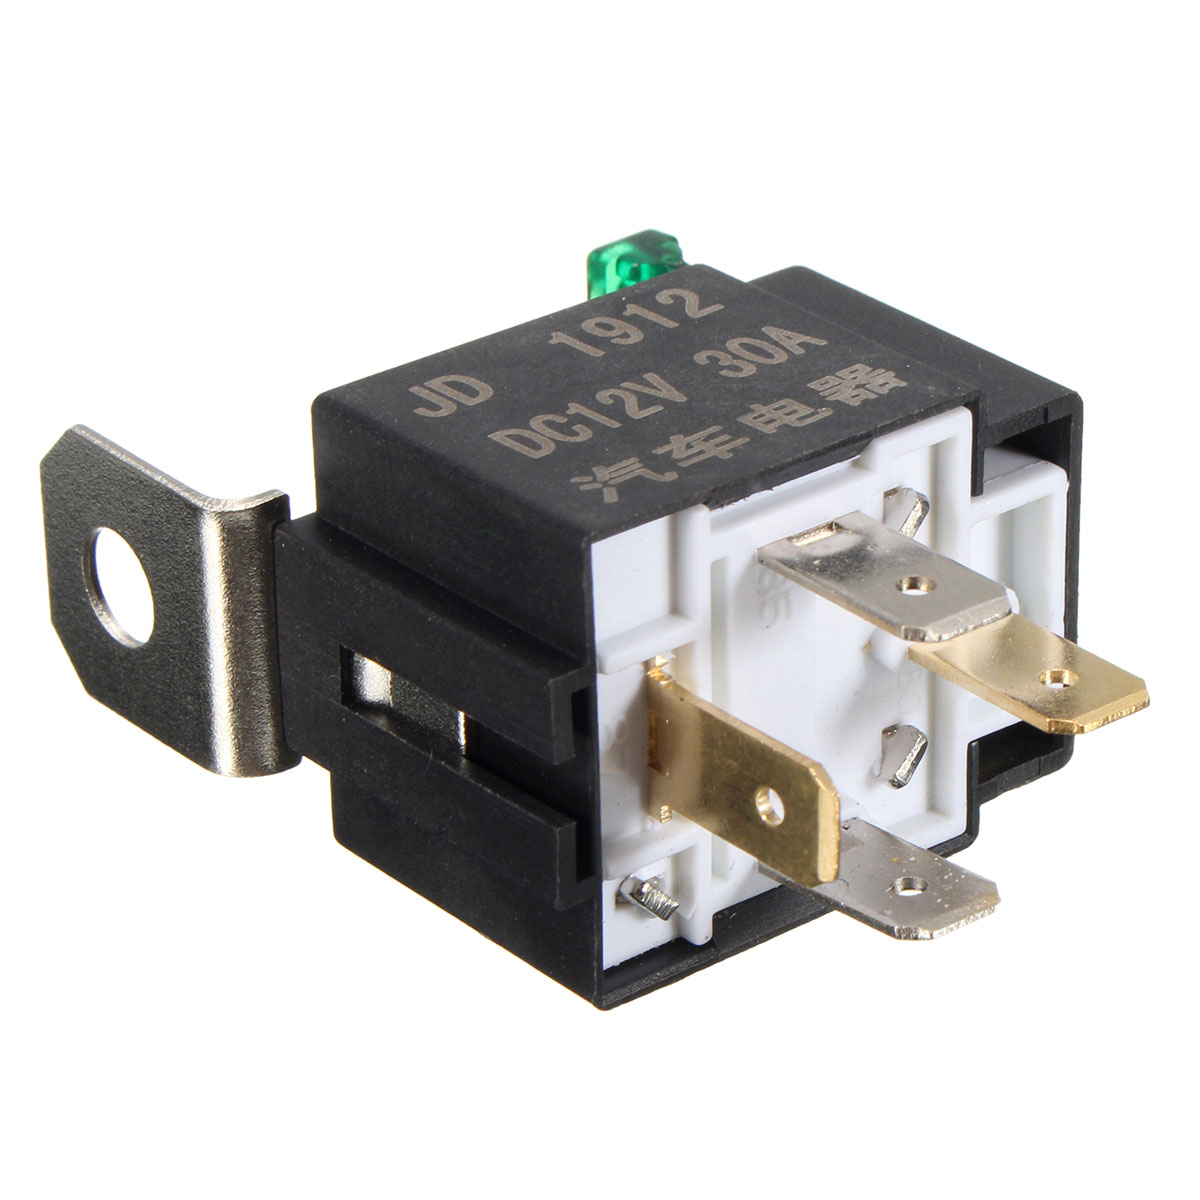 SKU38DC 12V Small And Lightweight Construction Automotive Relay With Fuse Four Legs